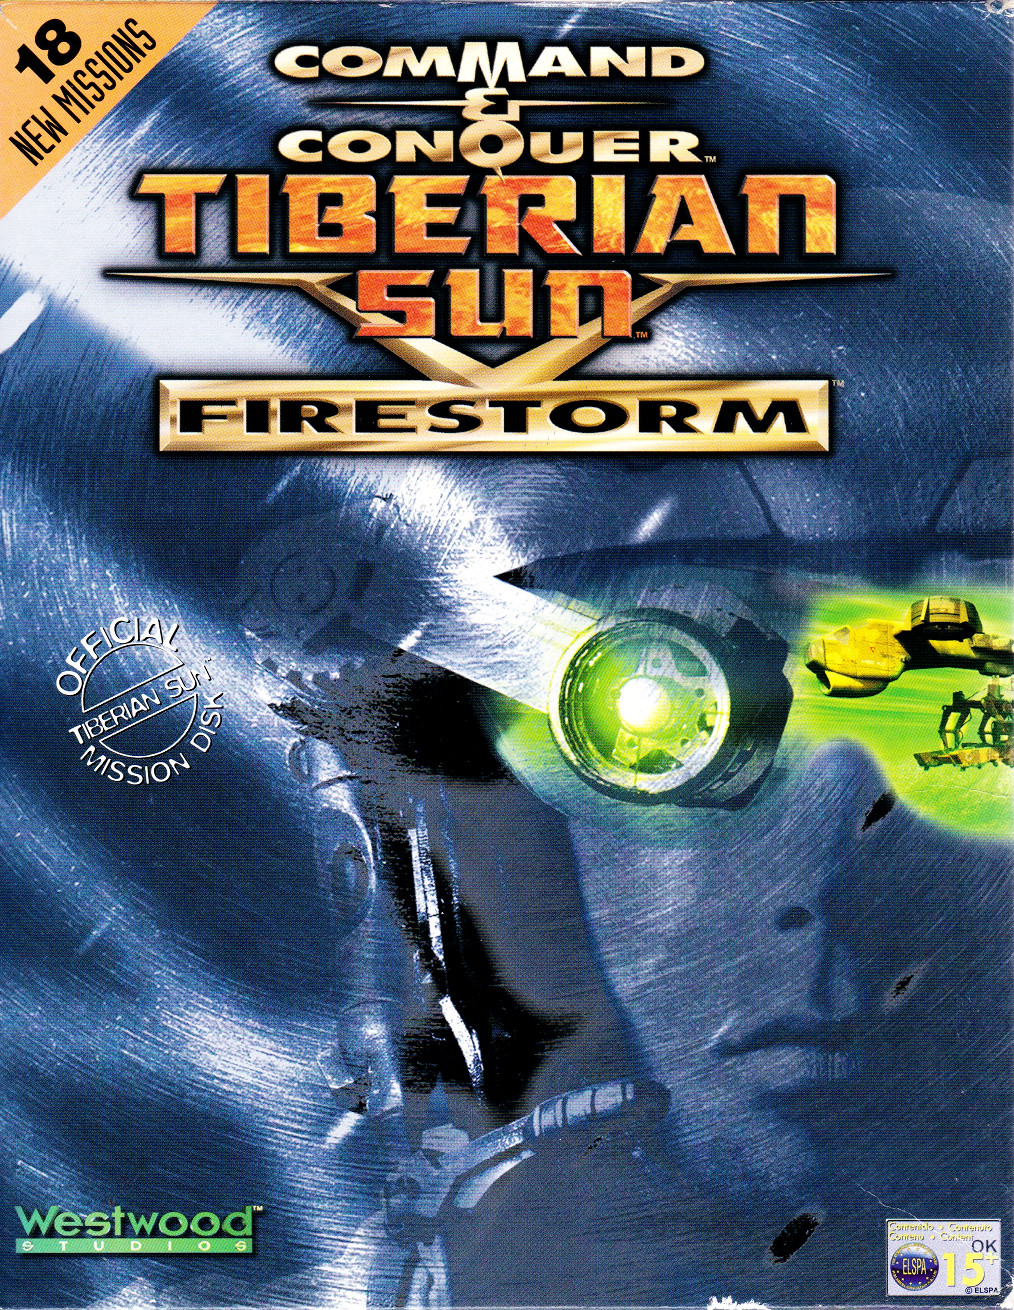 Command and Conquer: Tiberian Sun: Firestorm